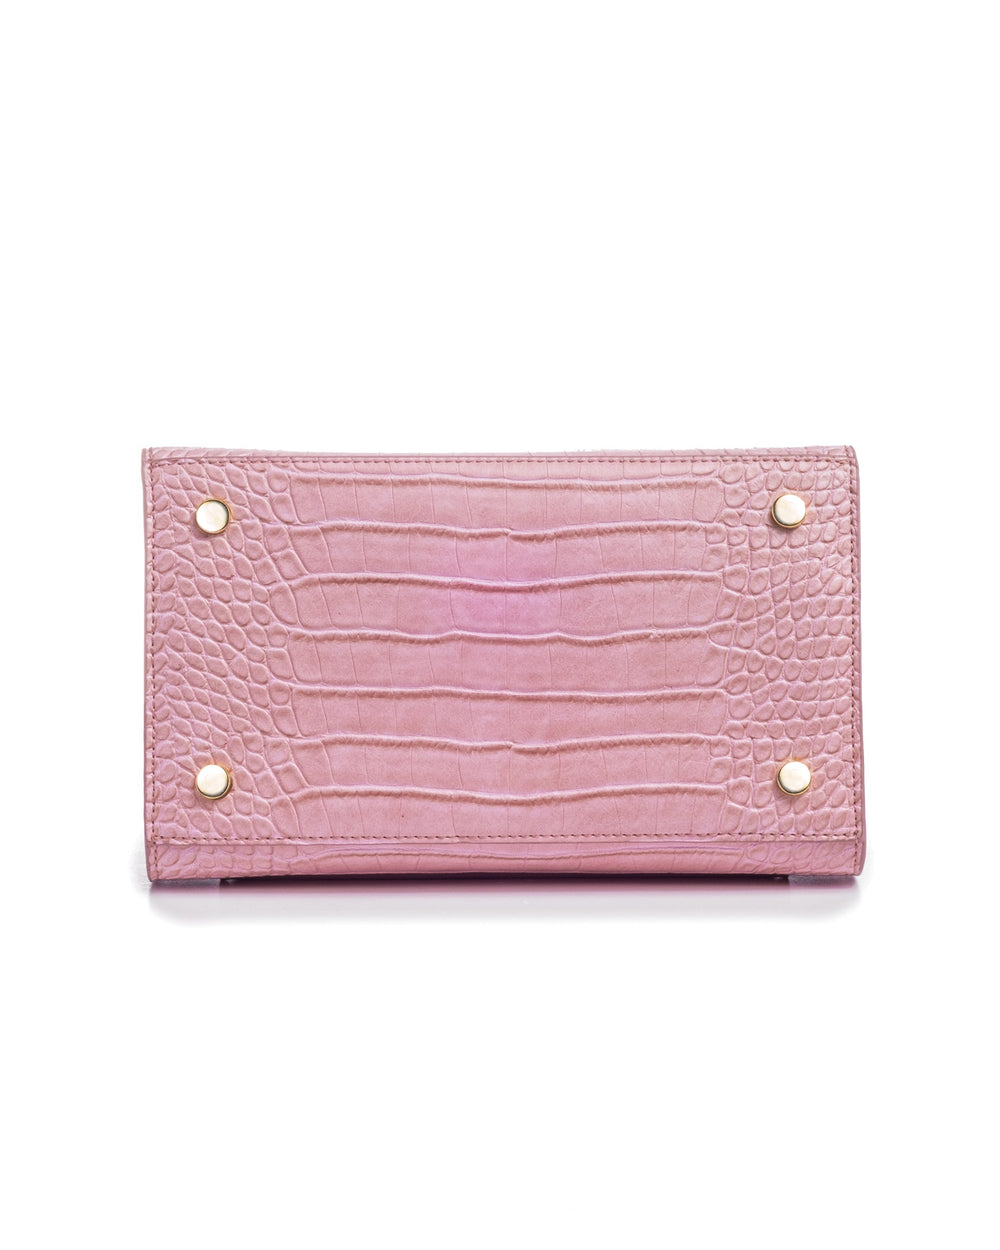 LIMITED EDITION PINK FAUX CROCODILE LUNCHER - ModernPicnic.com